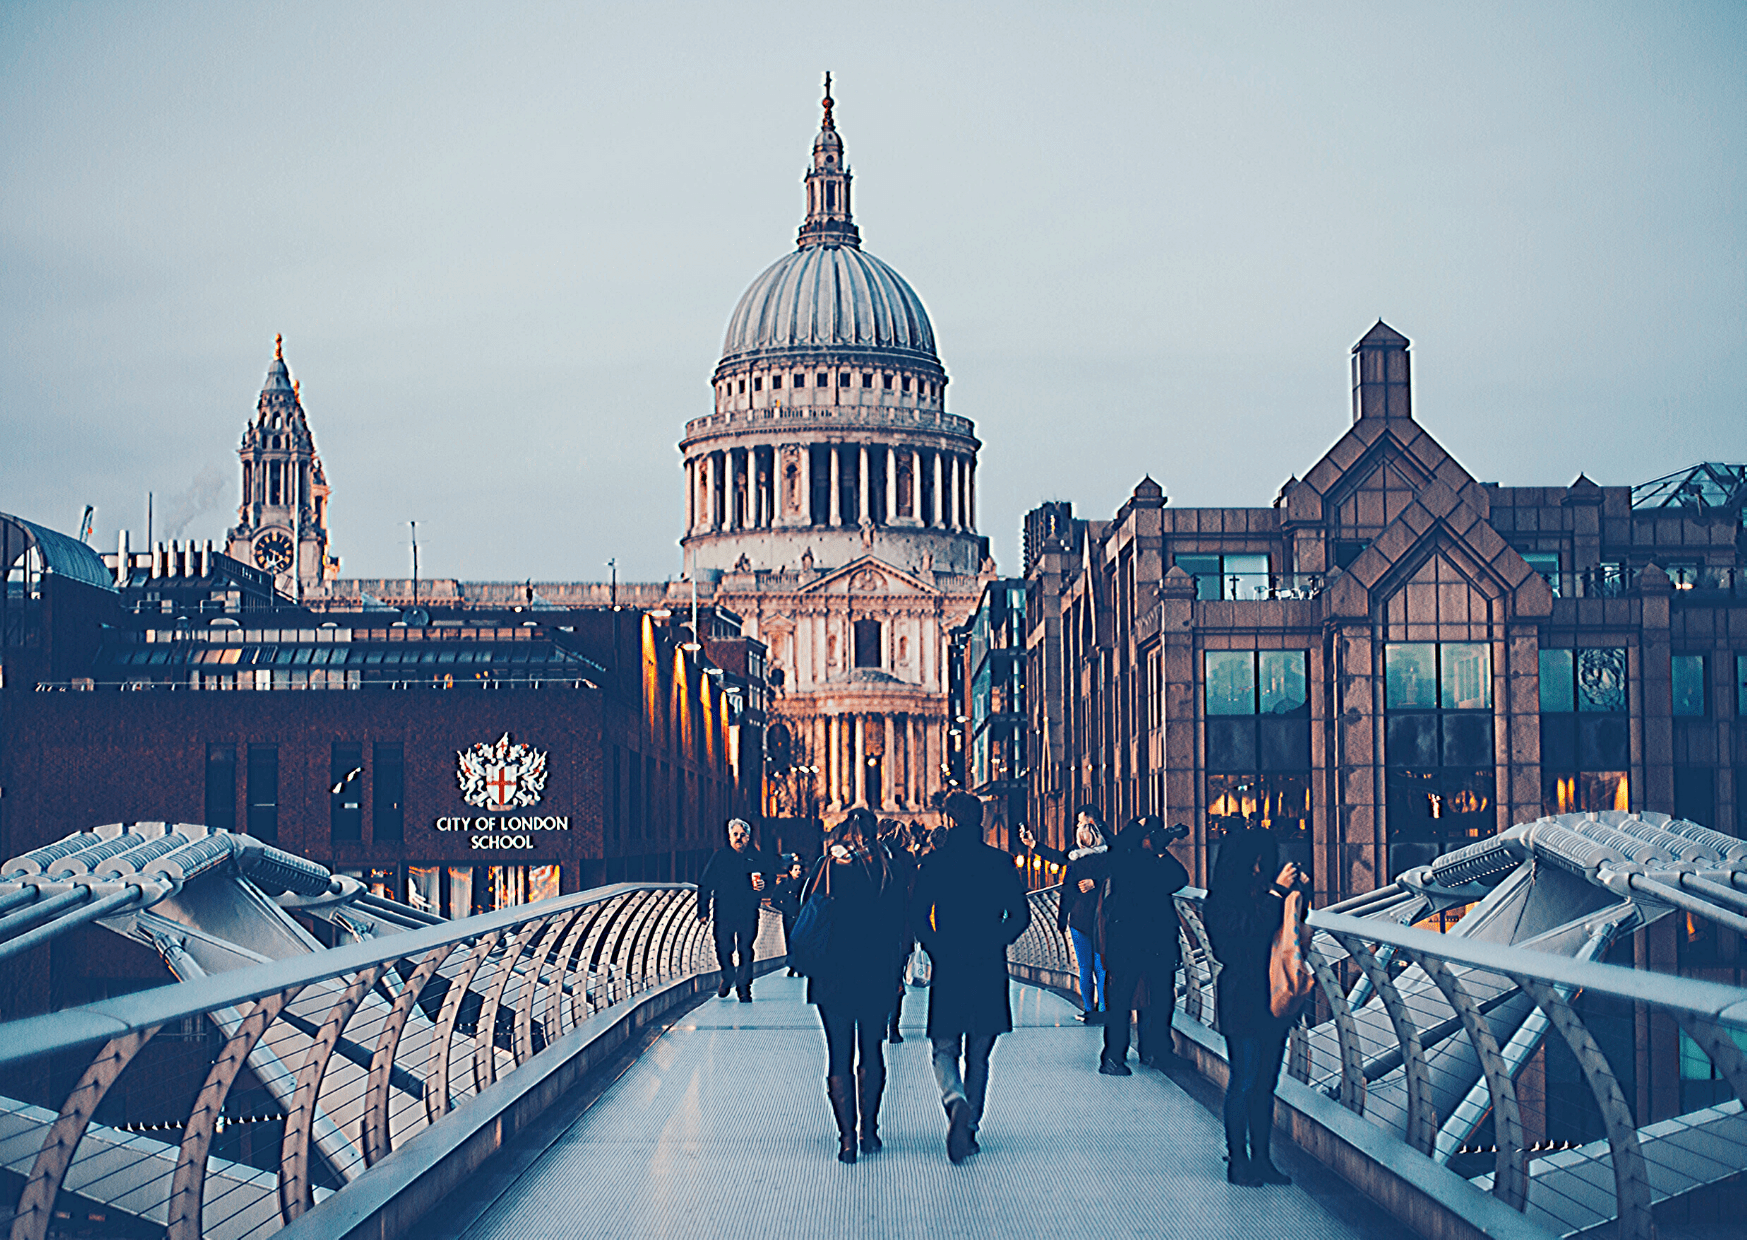 View of St Paul's Cathedral from the Millennium Bridge. Photo: Anthony Delanoix on unsplash.